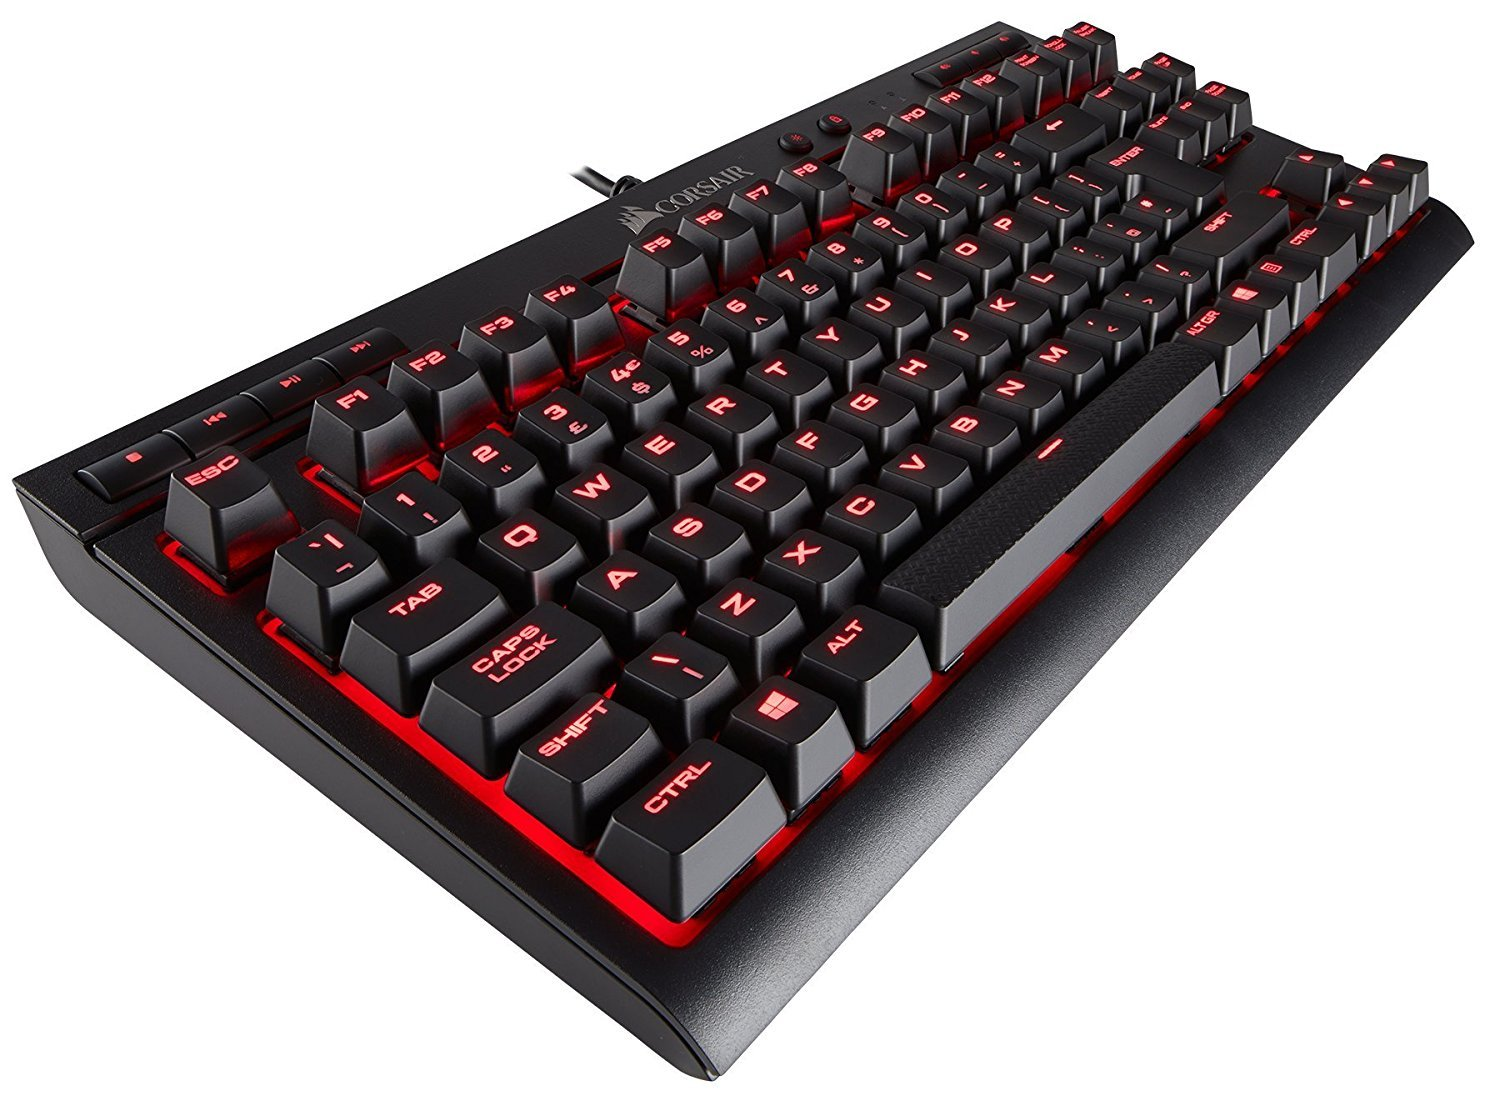 Corsair K63 Mechanical Gaming Keyboard (Cherry MX Red) for PC Games image